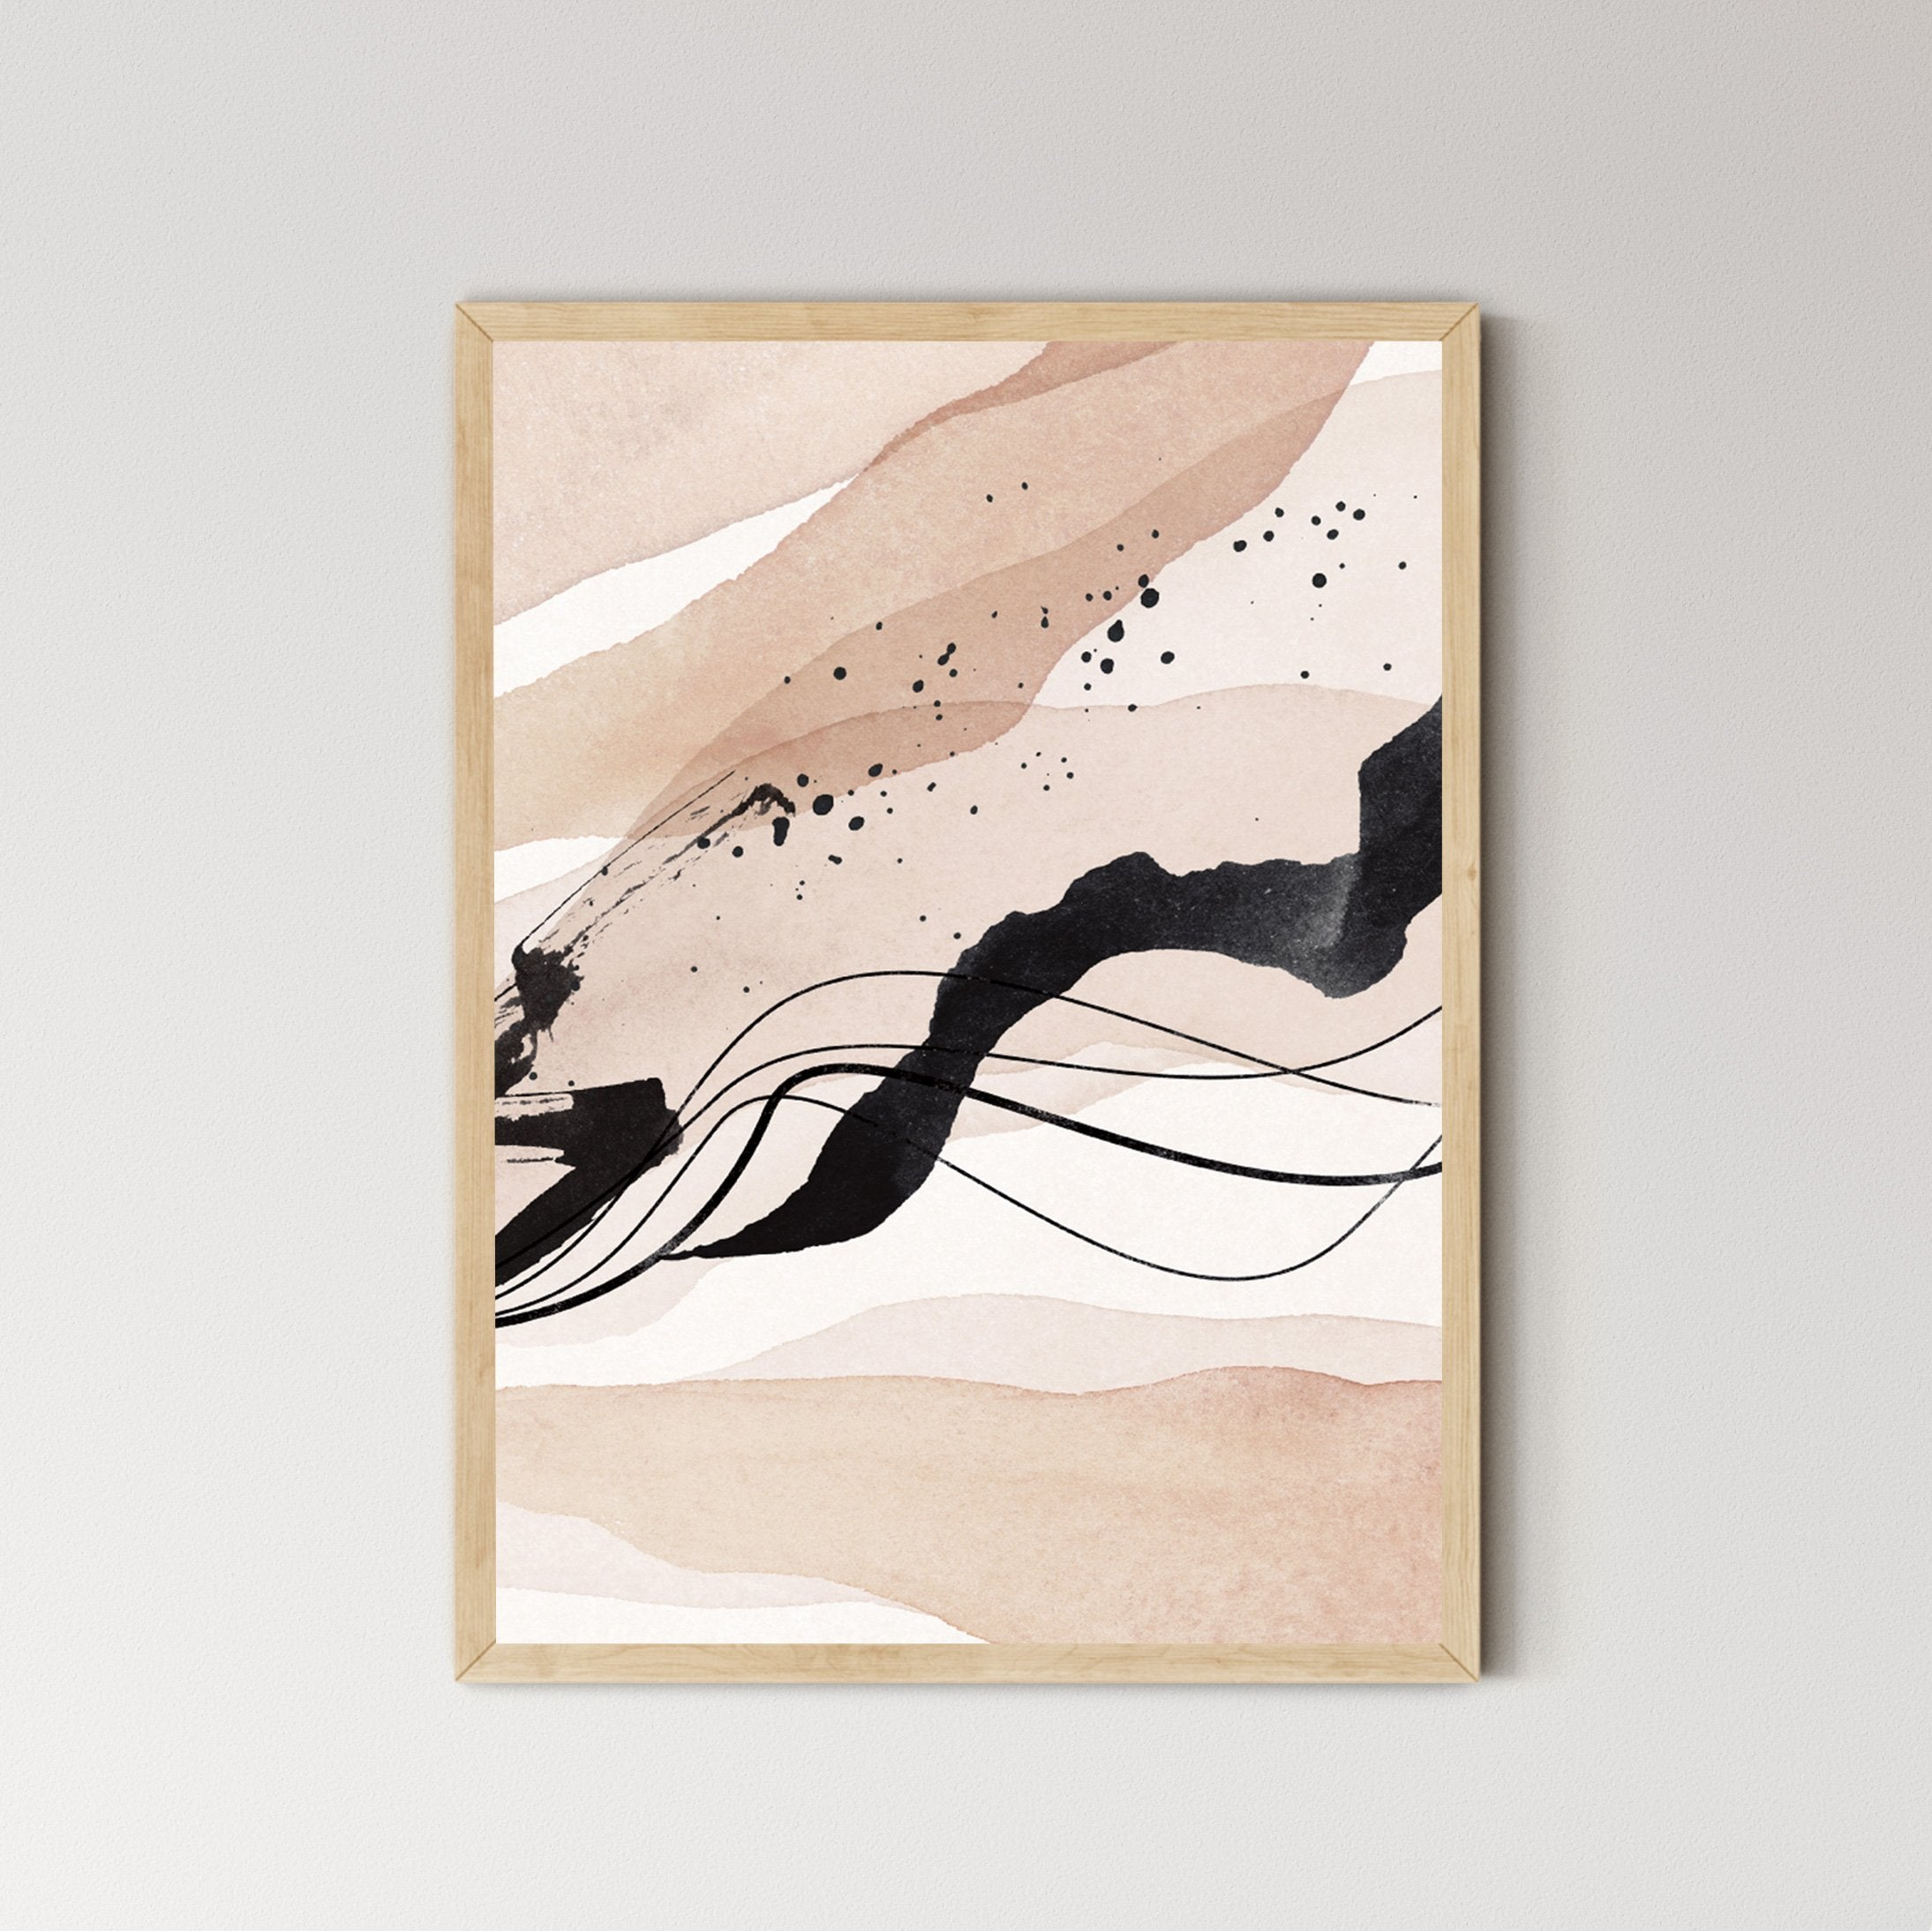 Dusty blush and earthy Abstract Landscape Art Print No.3 - Feathers and Stone